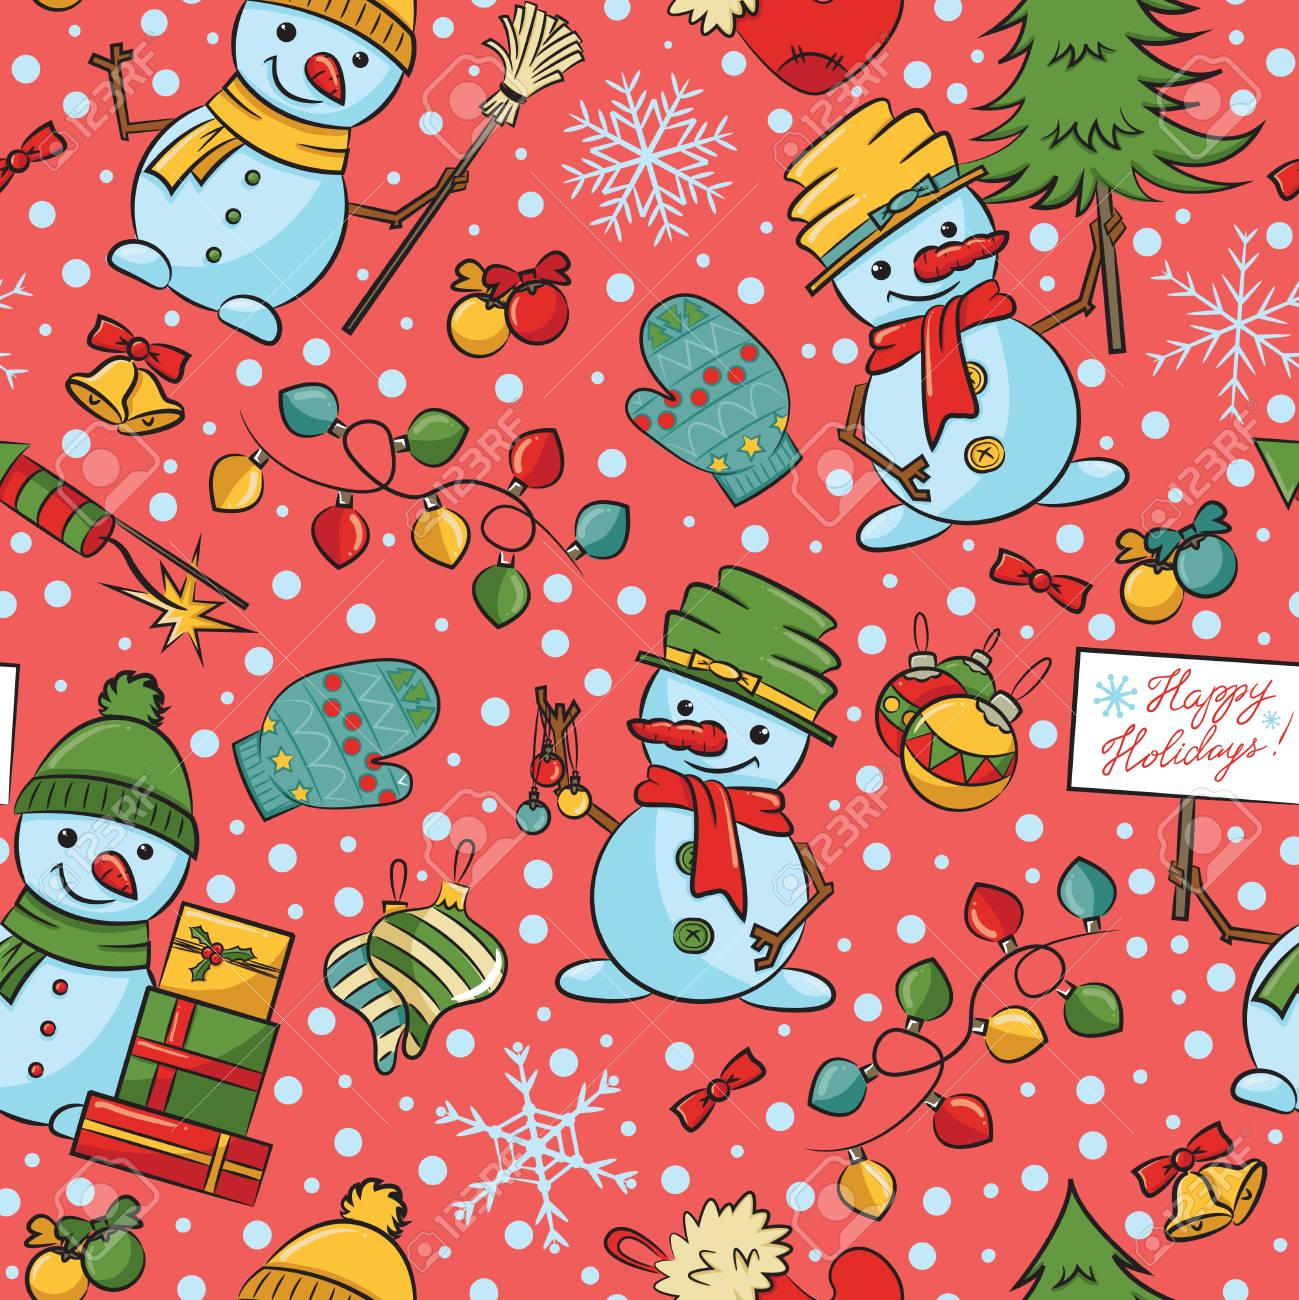 91356574 cartoon snowmen with decorations seamless pattern christmas wallpaper with cute characters trees gif